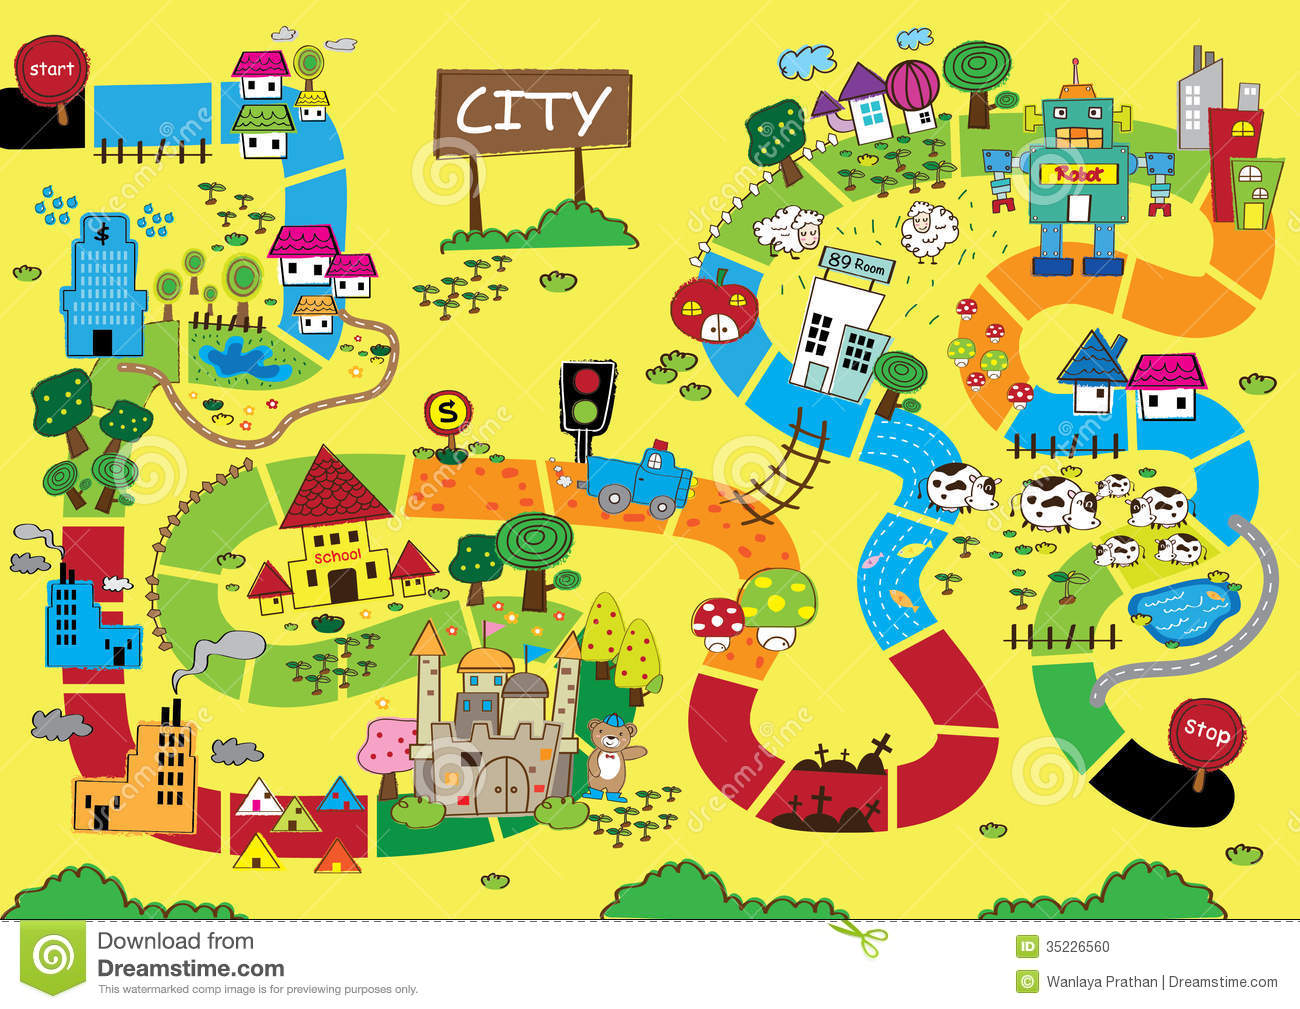 City road map clipart graphic royalty free library Simple Street Map Clipart - Clipart Kid graphic royalty free library